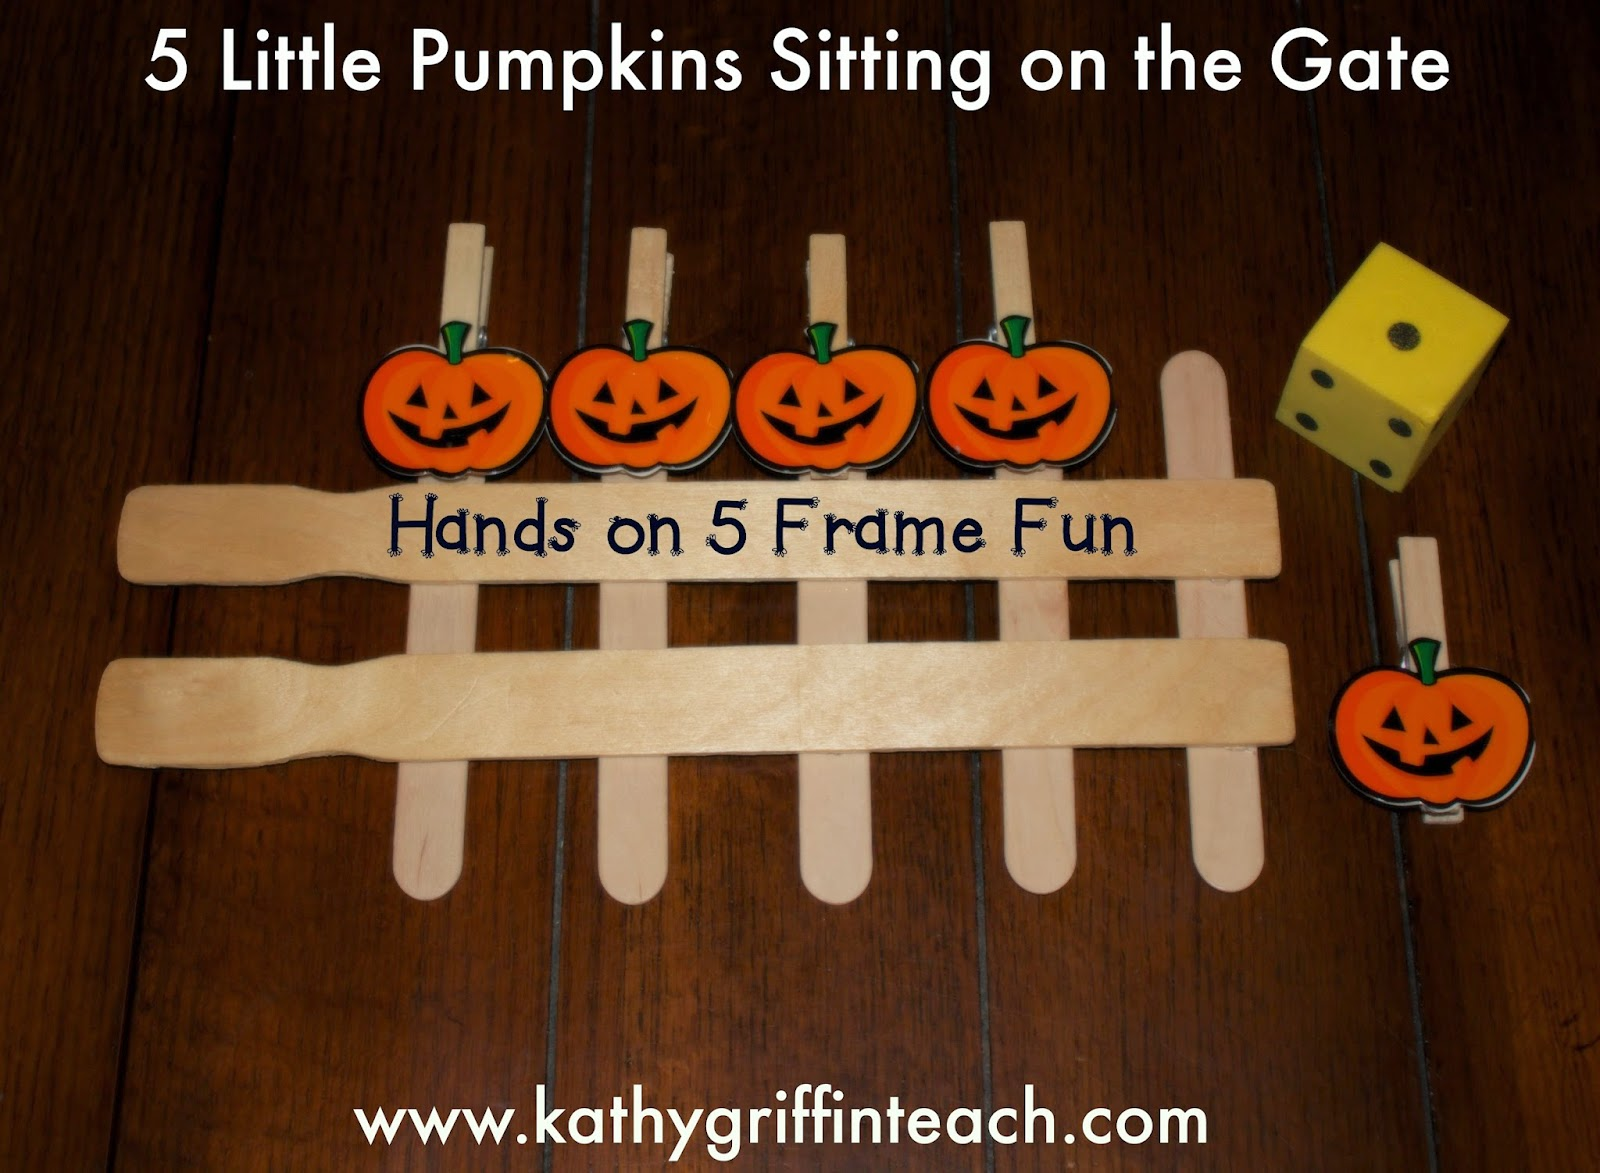 image relating to Five Little Pumpkins Sitting on a Gate Printable identified as Kathy Griffins Education Programs: 5 Very little Pumpkins